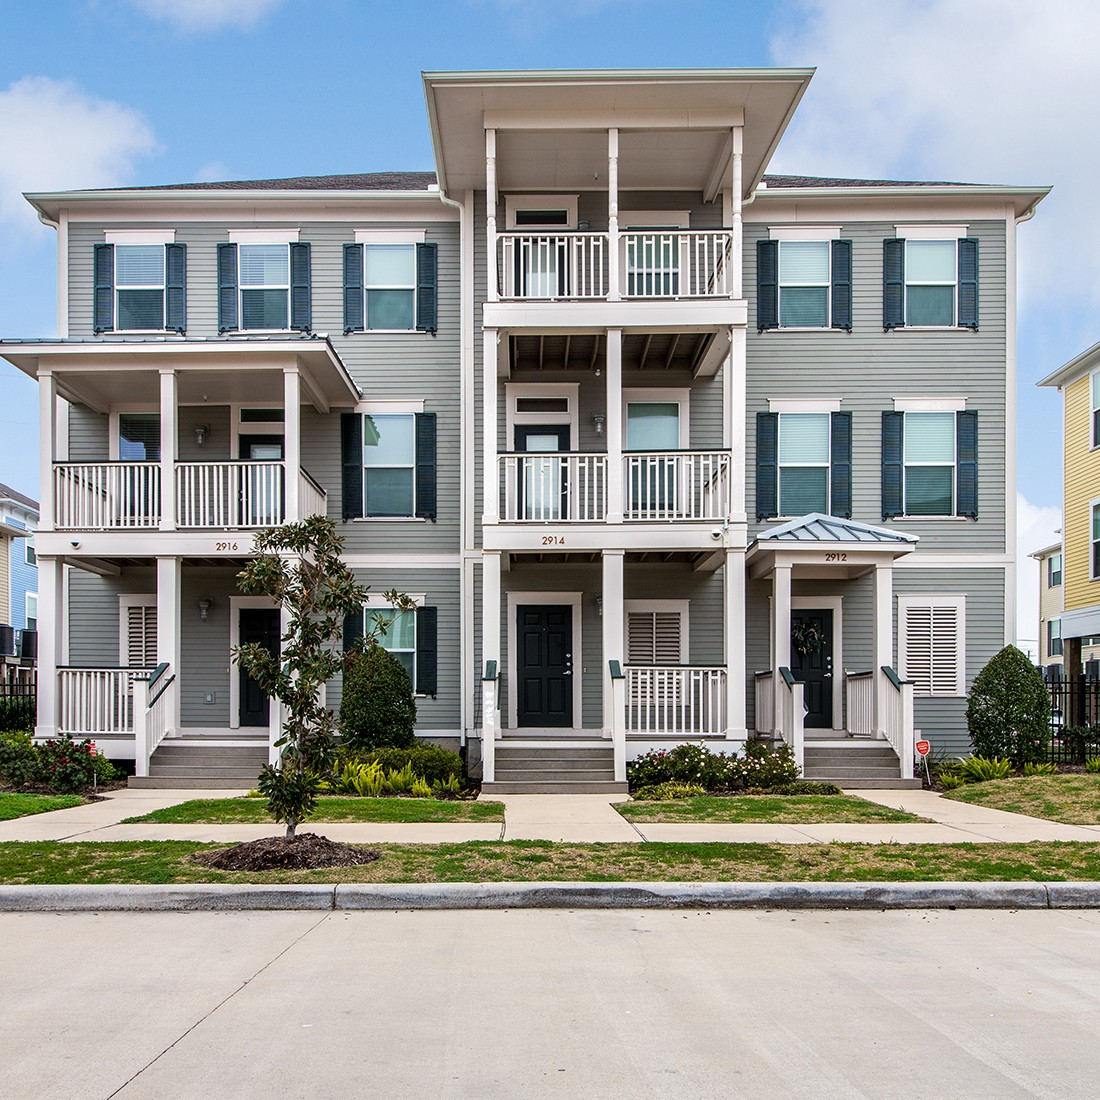 Apartments Near UTMB Cedars at Carver Park Apartments for The University of Texas Medical Branch Students in Galveston, TX